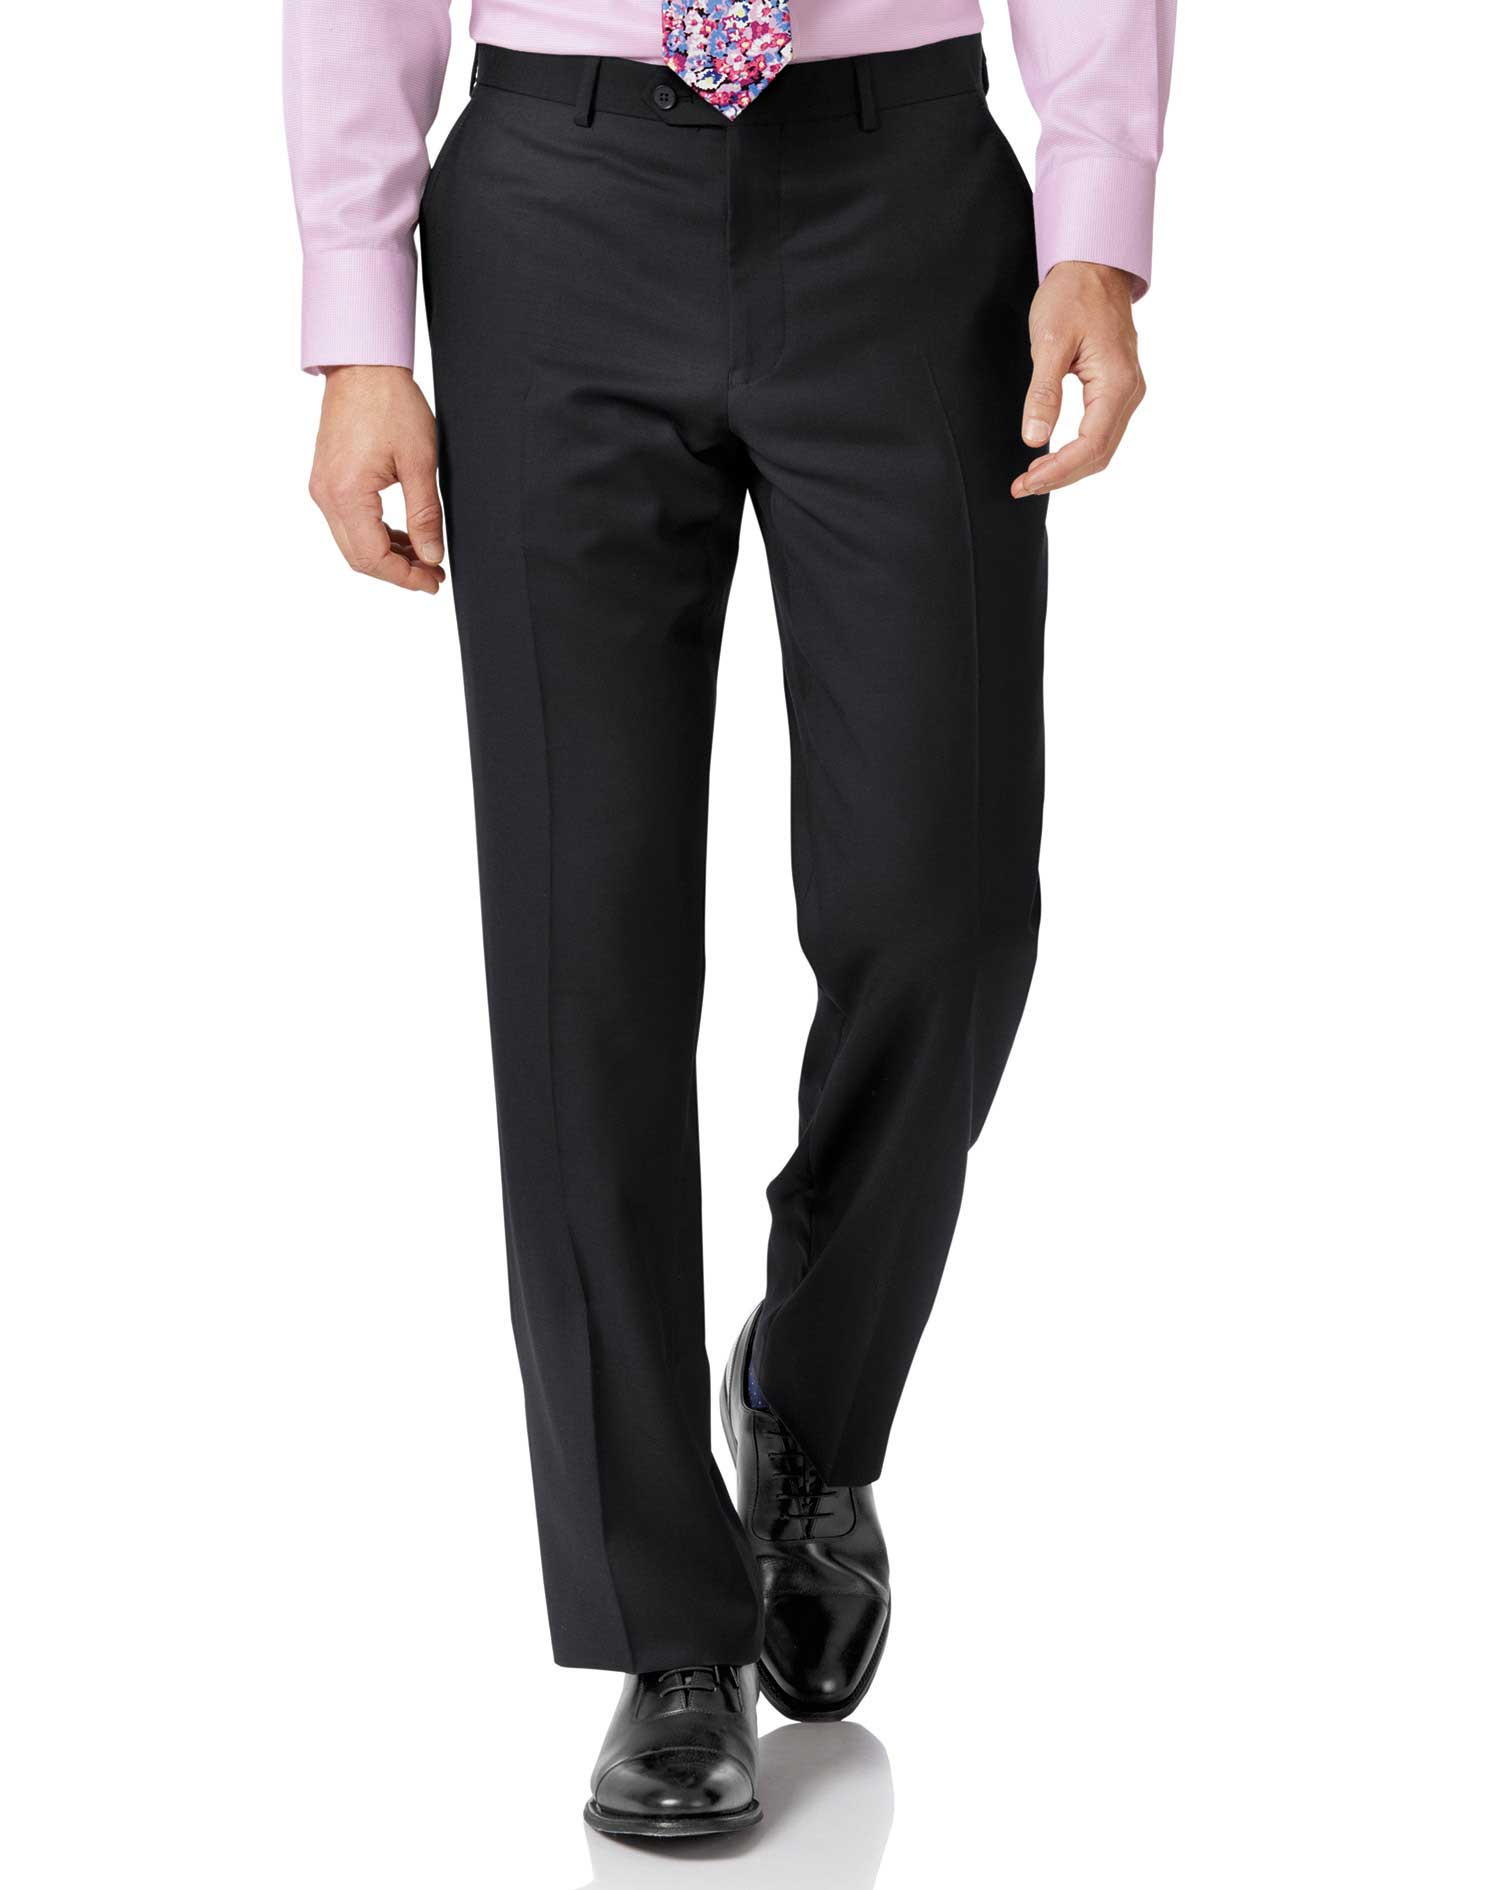 Black Classic Fit Twill Business Suit Trousers Size W34 L34 by Charles Tyrwhitt